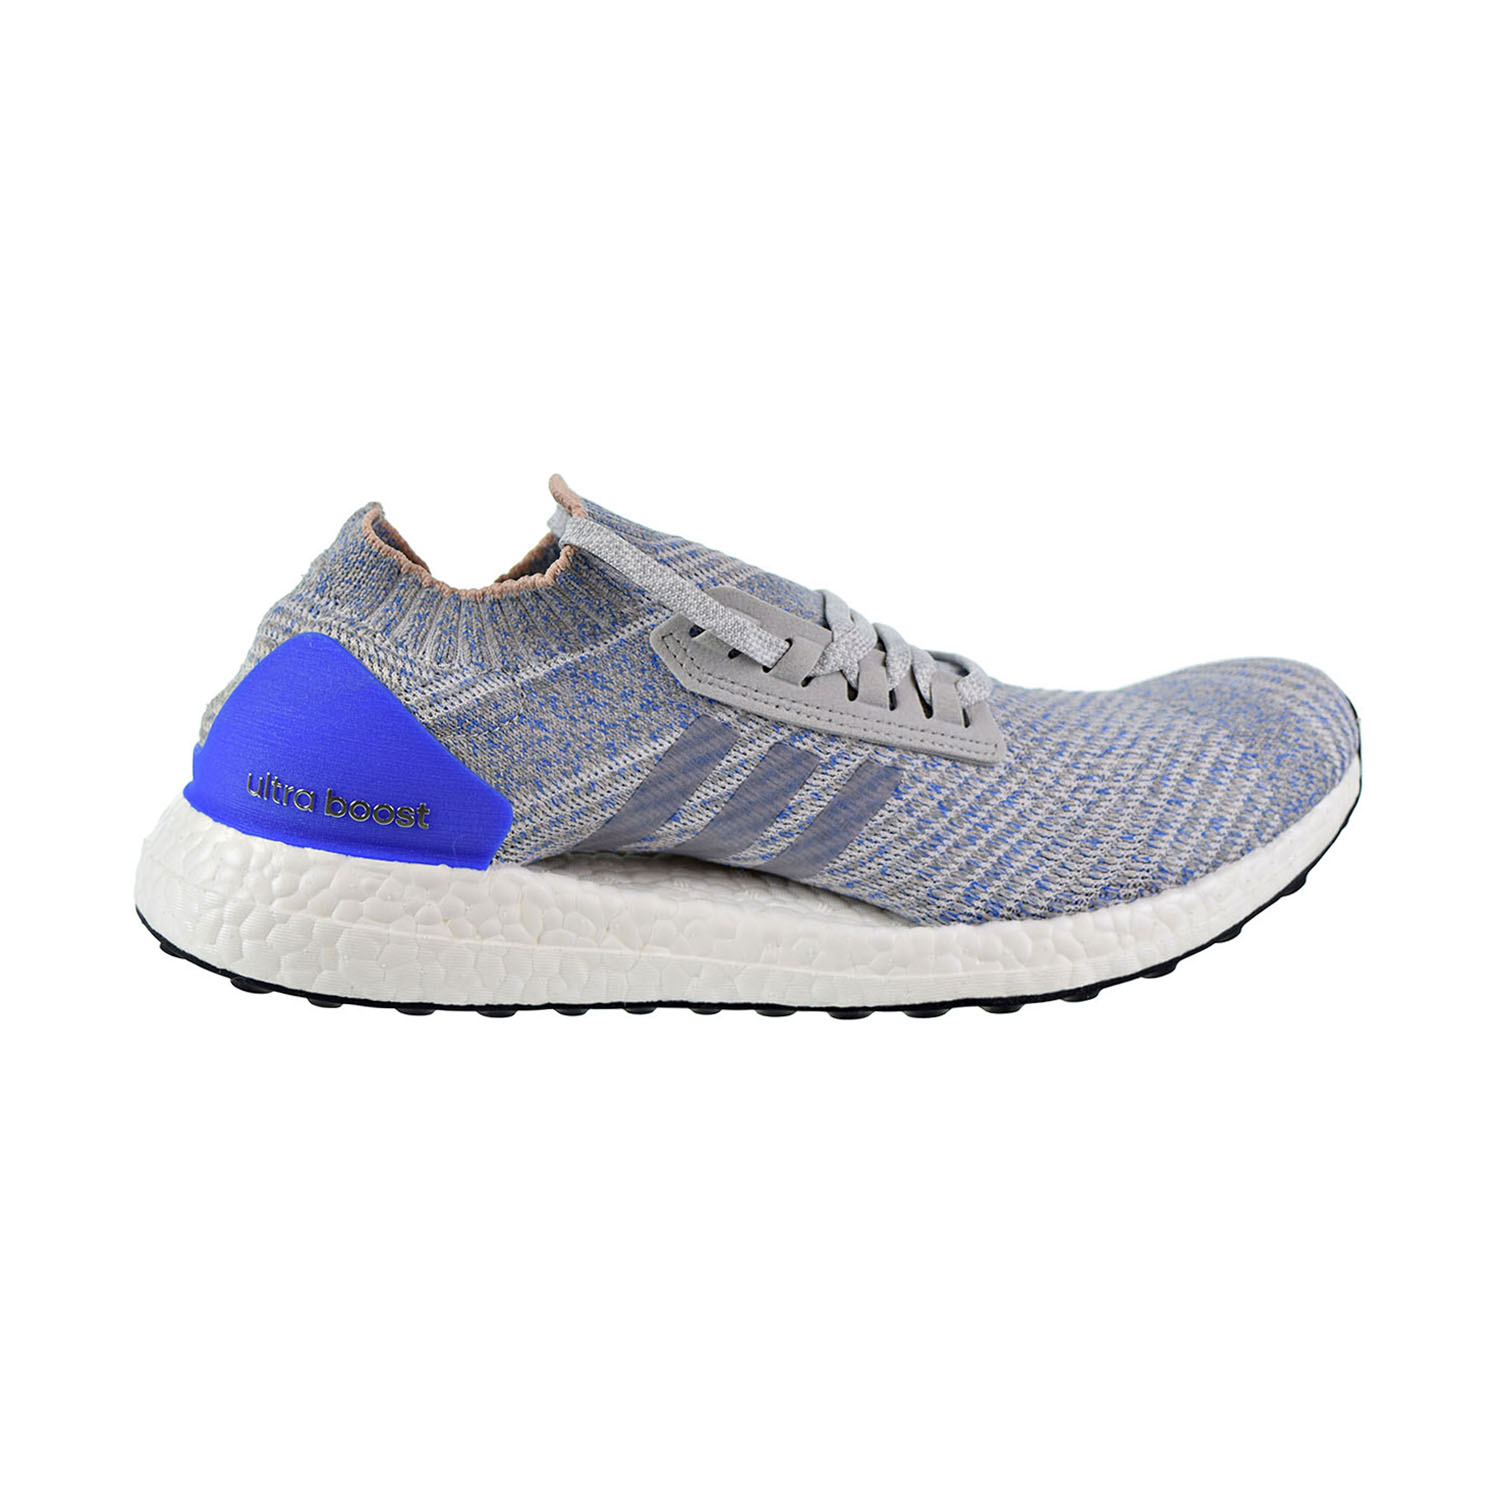 2212bafd011 Details about Adidas Ultraboost X Women s Shoes Grey Two Grey Two Hi-Res  Blue BB6155